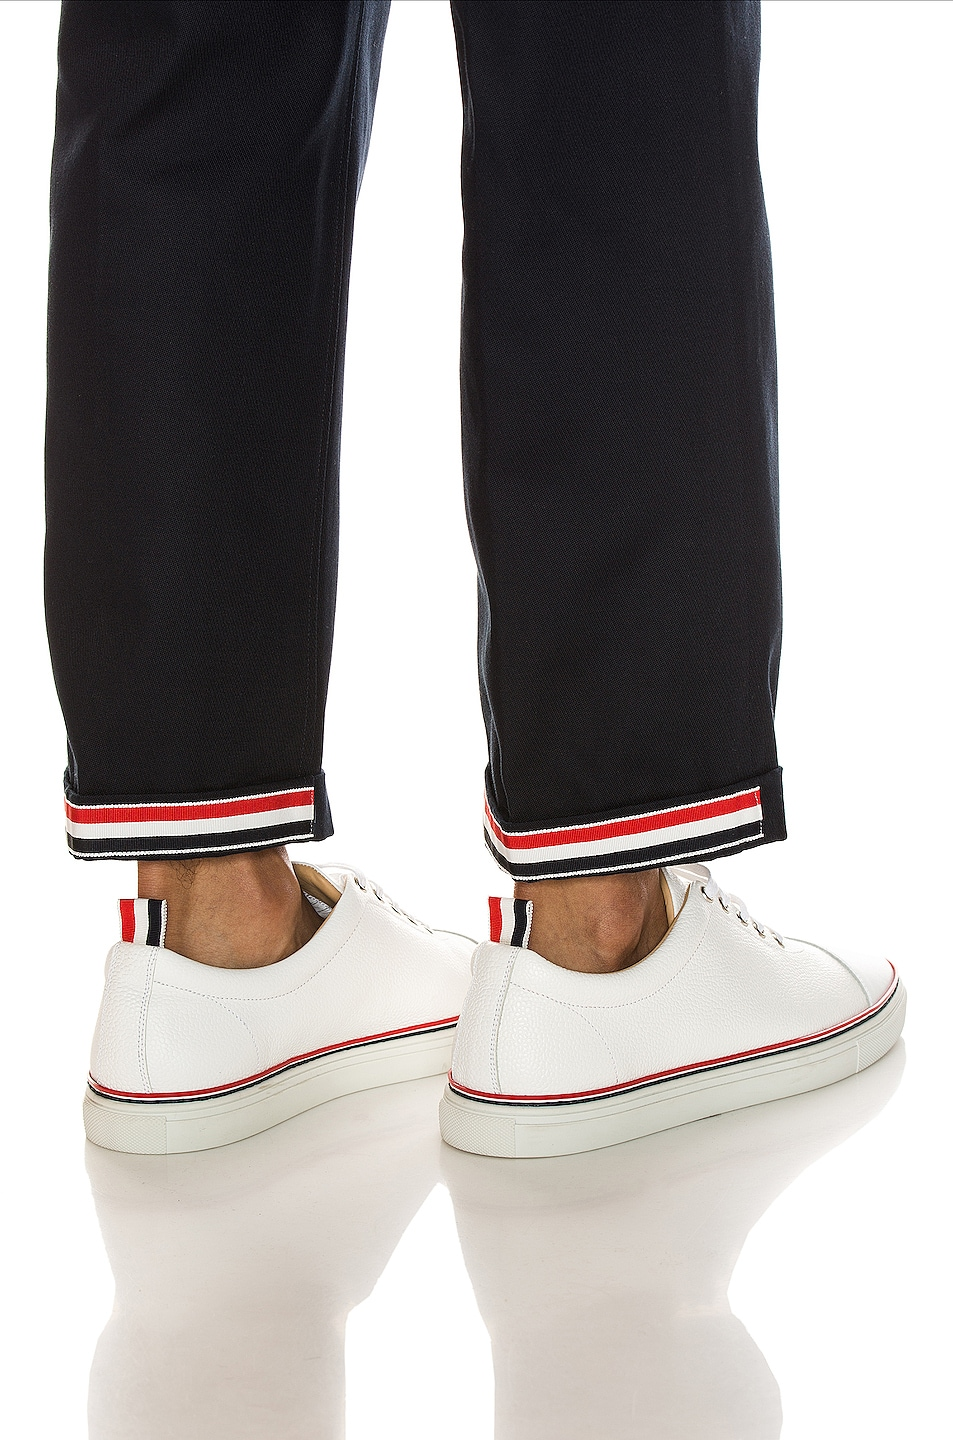 Image 5 of Thom Browne Cuffed Chino Pants in Navy